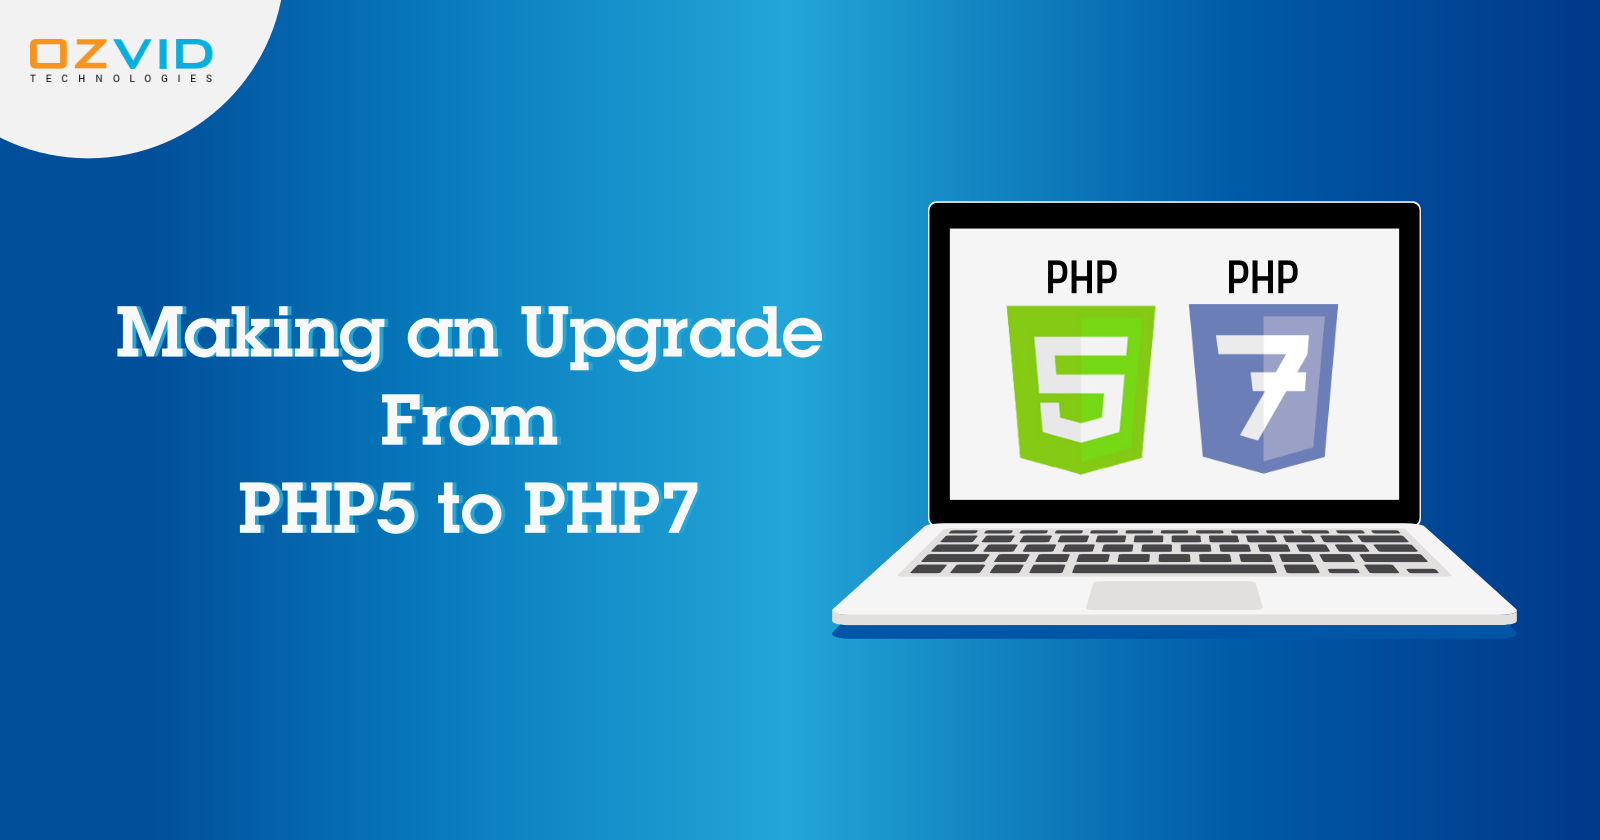 Have you upgraded from PHP 5 to PHP 7?